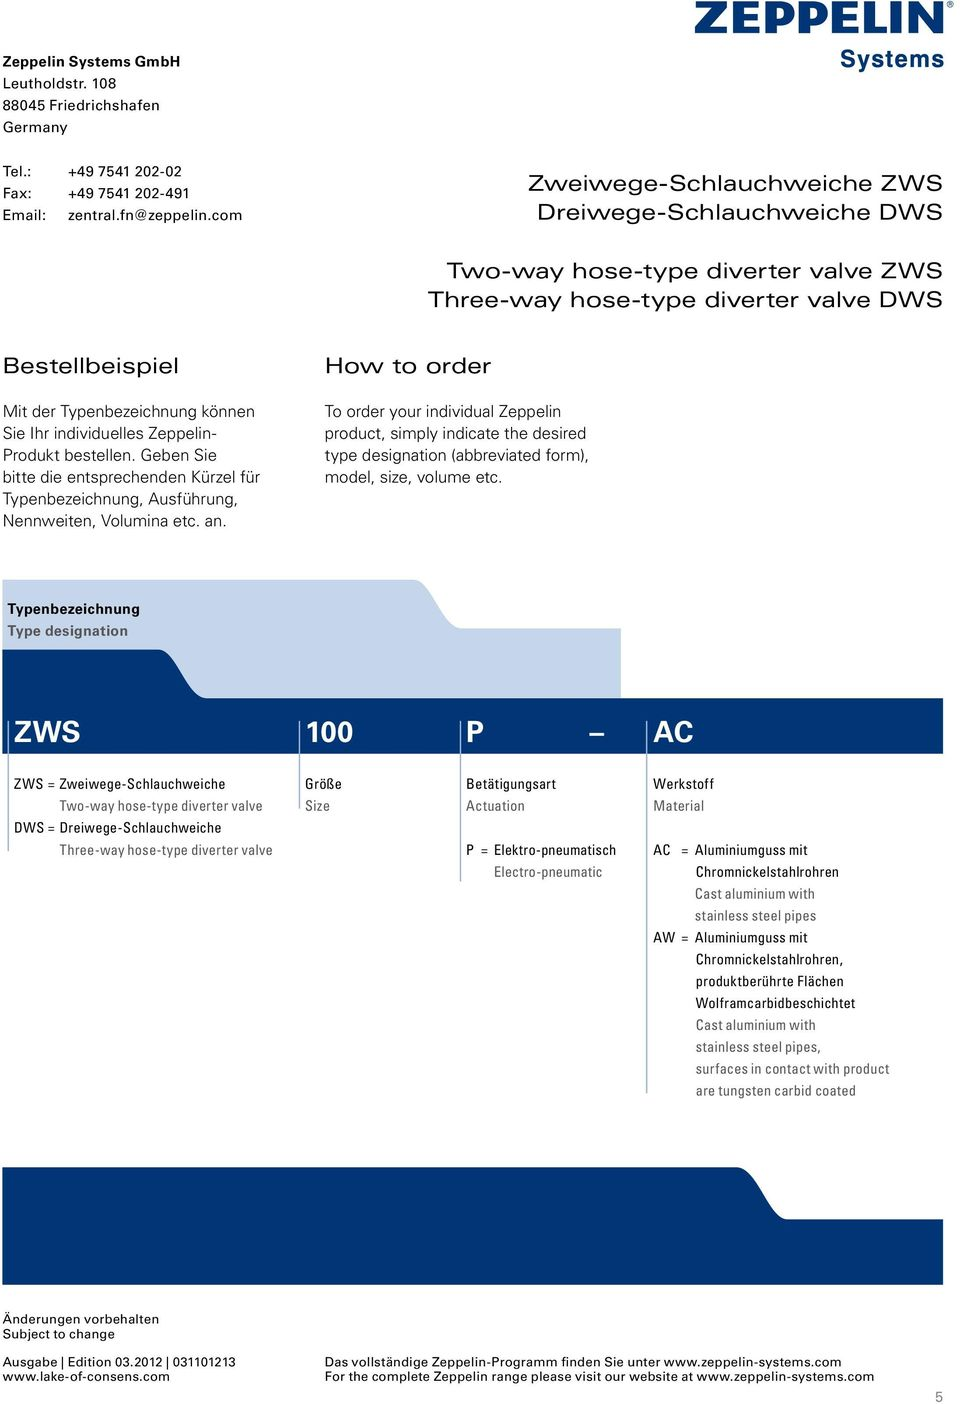 Typenbezeichnung Type designation ZWS 100 P AC ZWS = Zweiwege-Schlauchweiche Two-way hose-type diverter valve DWS = Dreiwege-Schlauchweiche Three-way hose-type diverter valve Betätigungsart Actuation